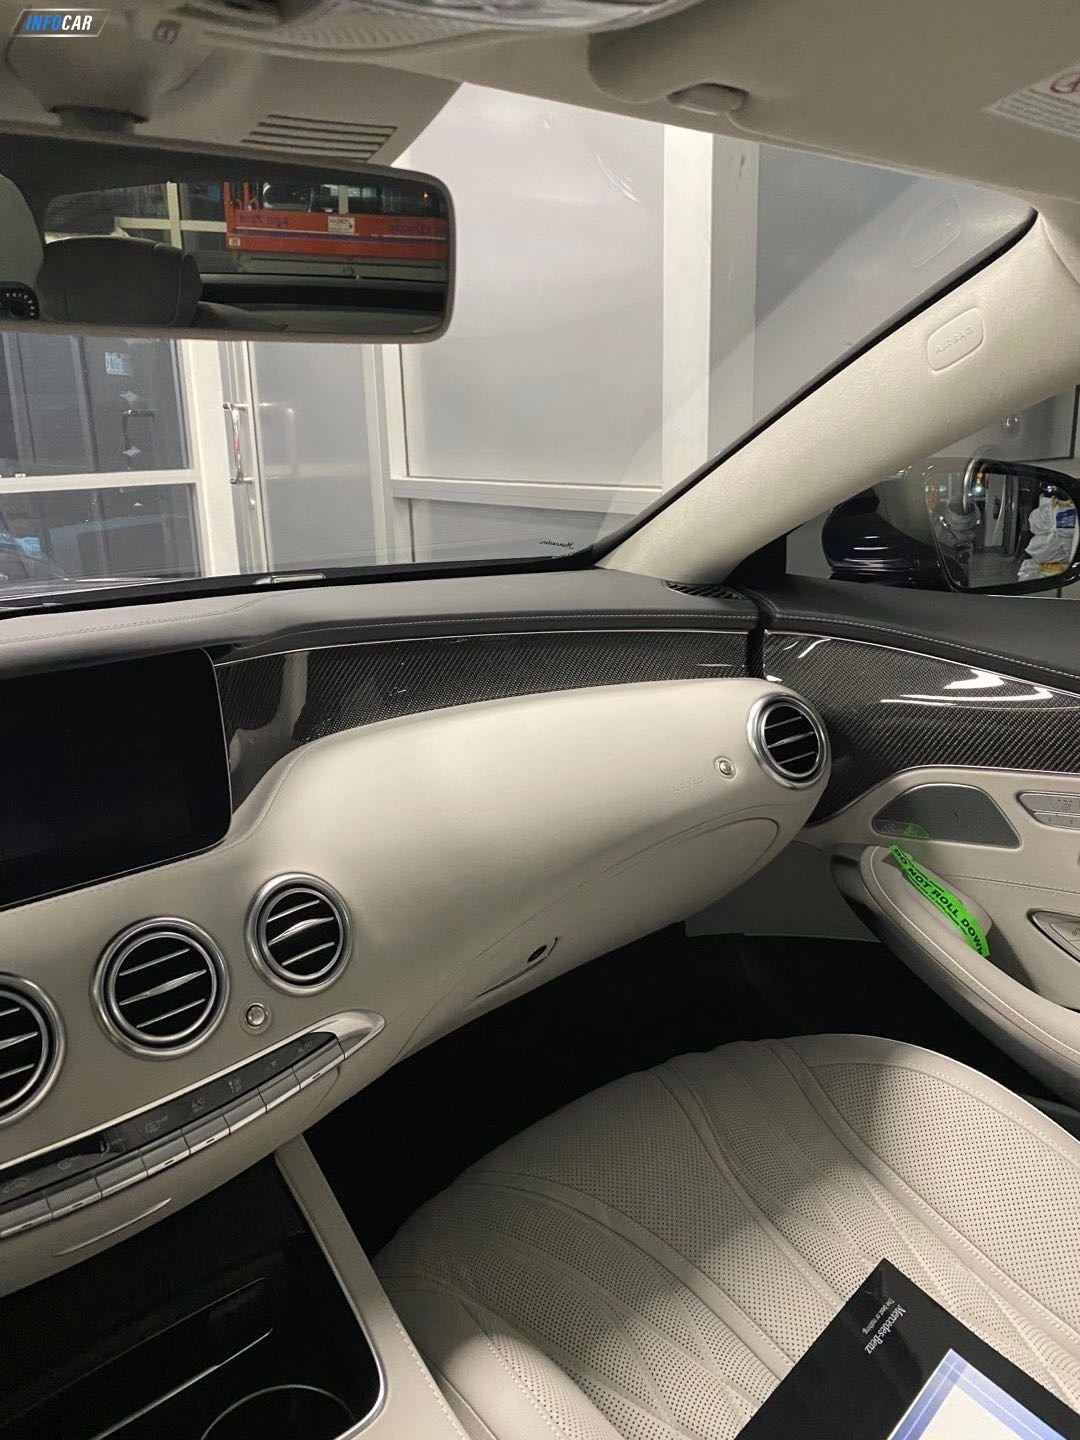 2019 Mercedes-Benz S-Class 63 - INFOCAR - Toronto's Most Comprehensive New and Used Auto Trading Platform